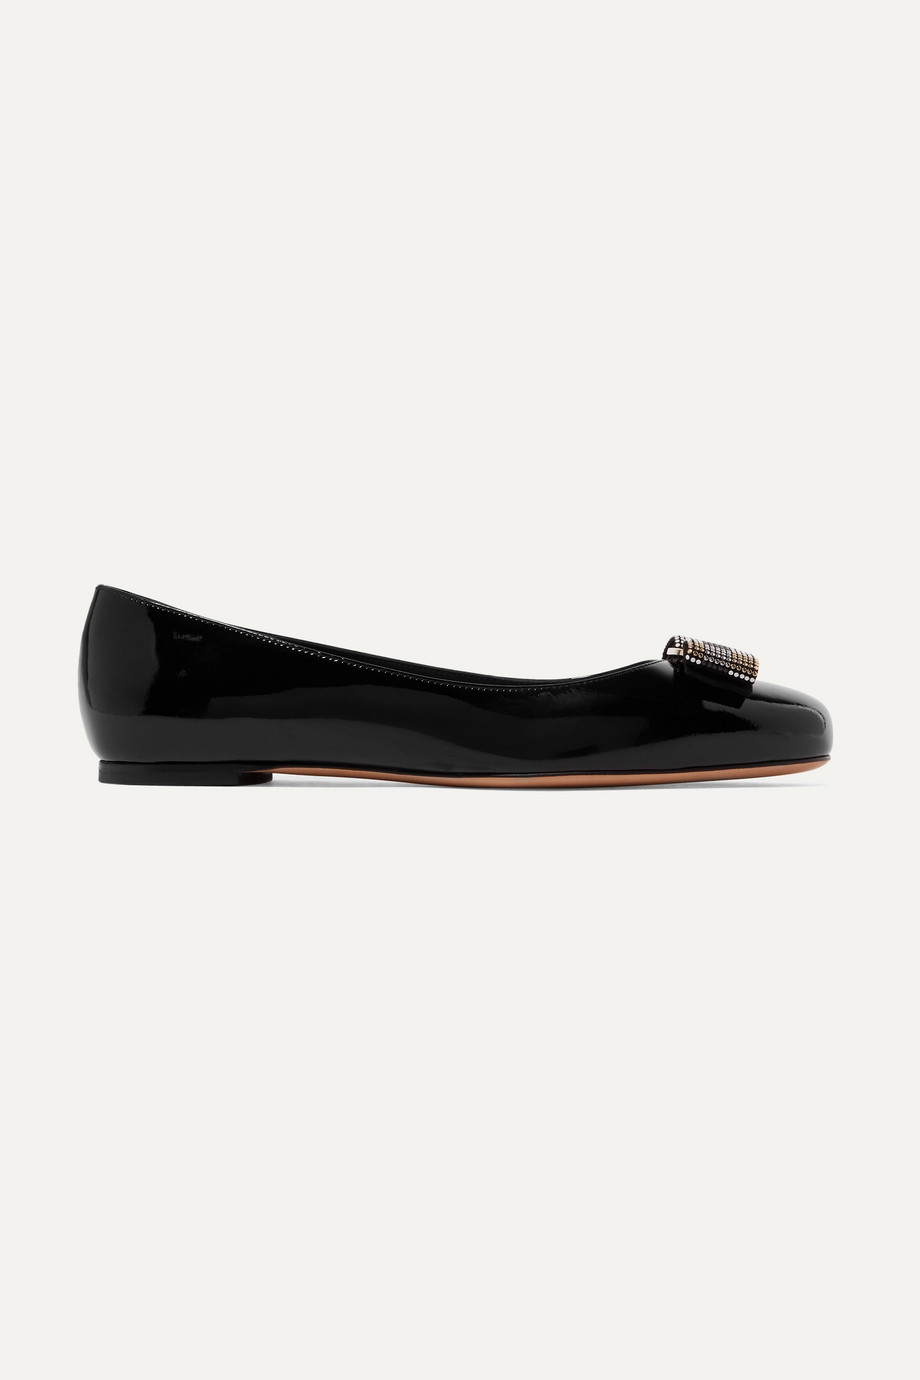 SALVATORE FERRAGAMO Varina studded bow-embellished patent-leather ballet flats